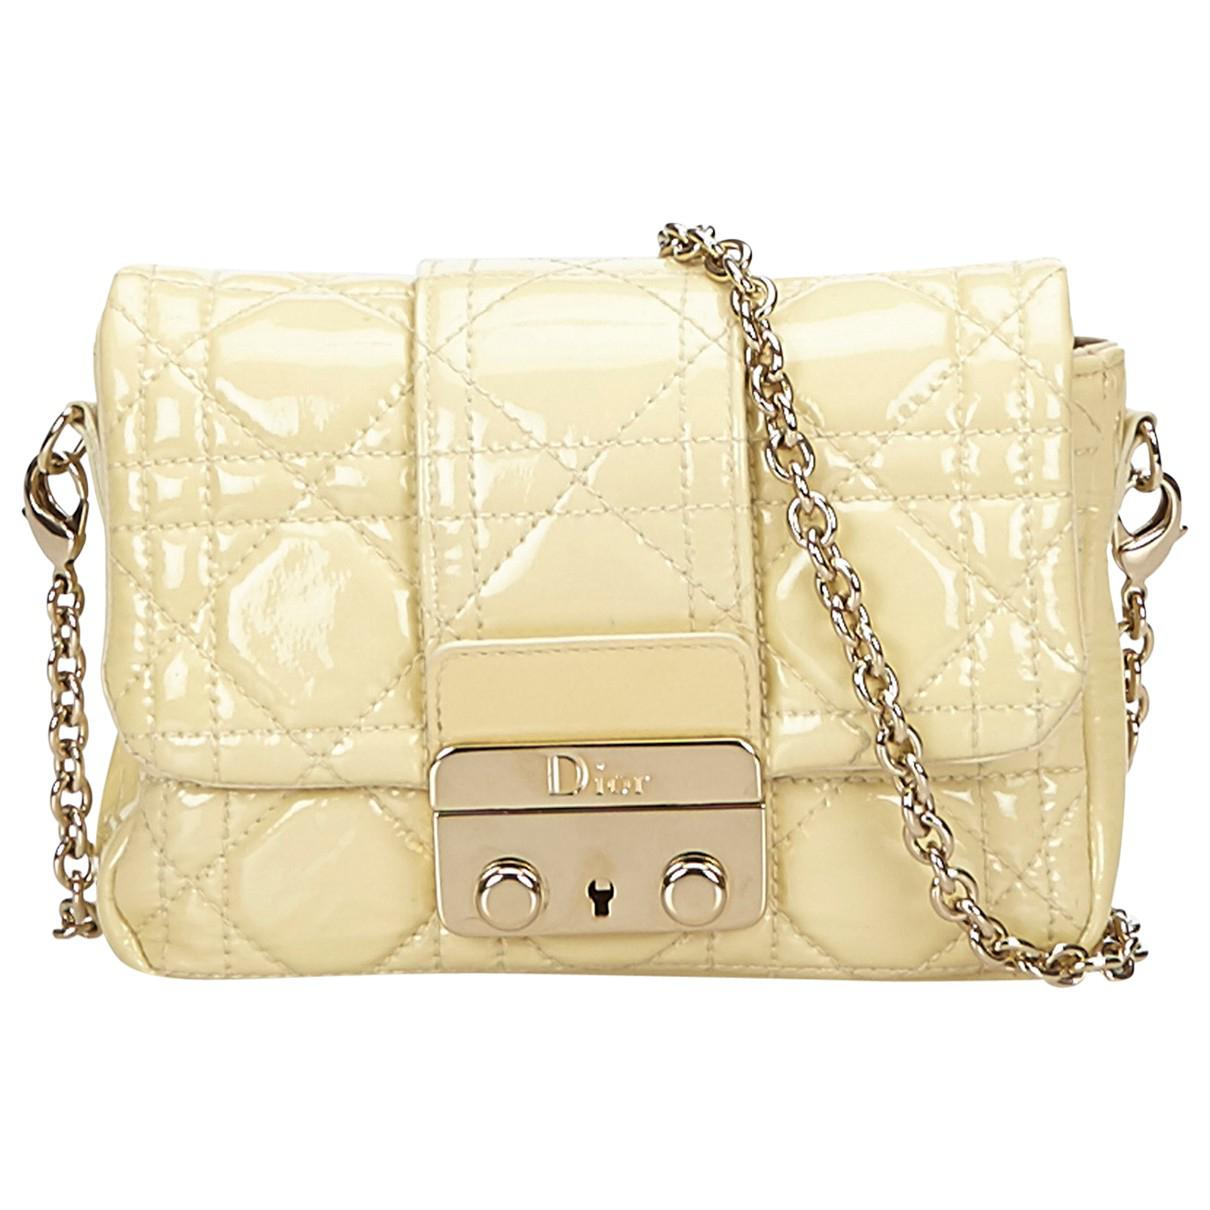 Dior Pre-owned - Yellow Leather Handbag 02ze65vXm